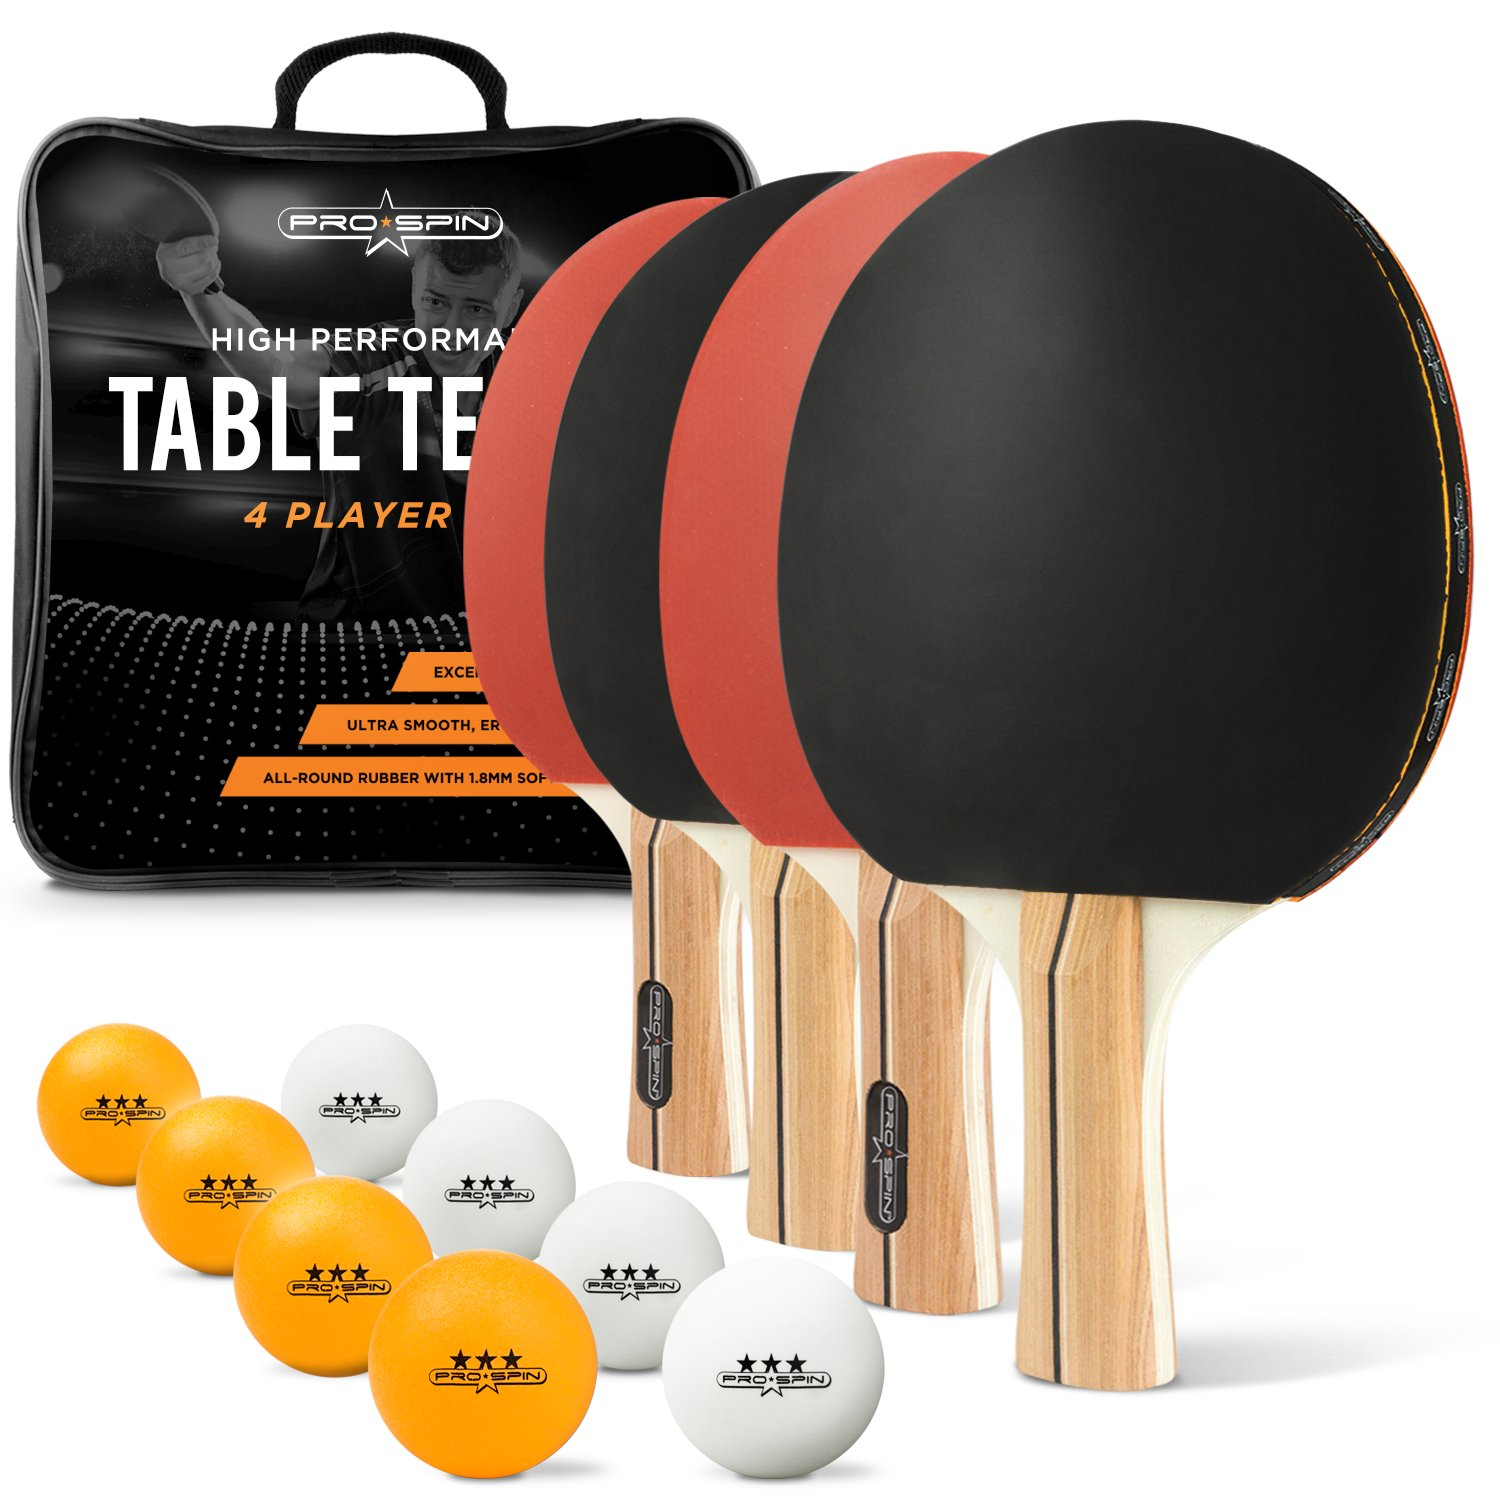 PRO SPIN Ping Pong Paddle Set - Includes 4 Paddles/Rackets, 8 Balls, Premium Storage Case - Professional Table Tennis Set of 4